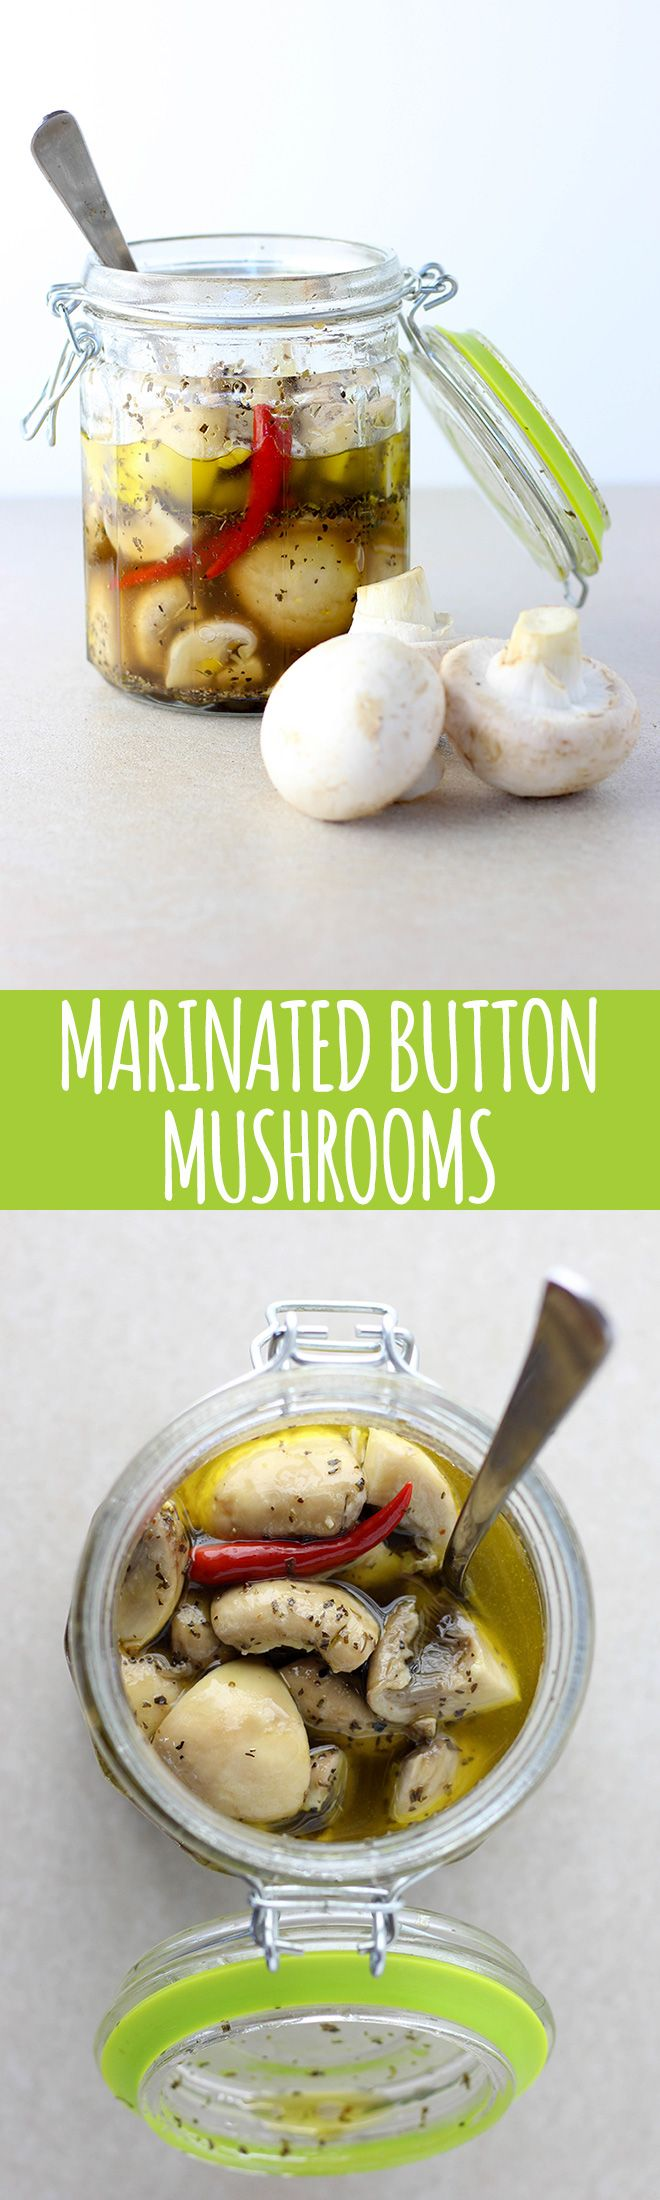 Yummy marinated mushrooms to add to salads and antipasto platters. -Vegan Mariposa                                                                                                                                                                                 More